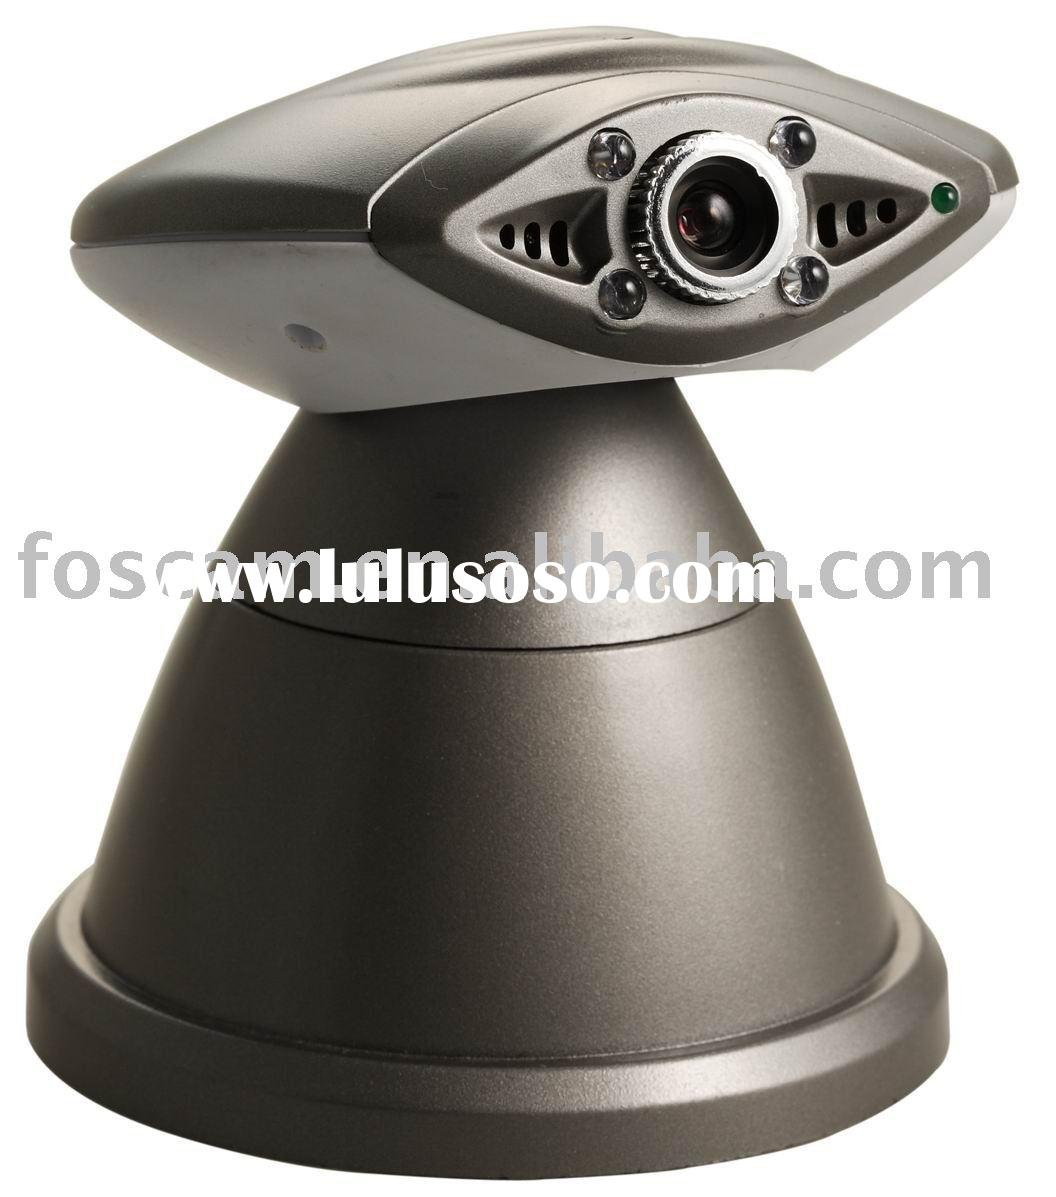 Low price ip camera low price ip camera manufacturers in - Low cost camera ...